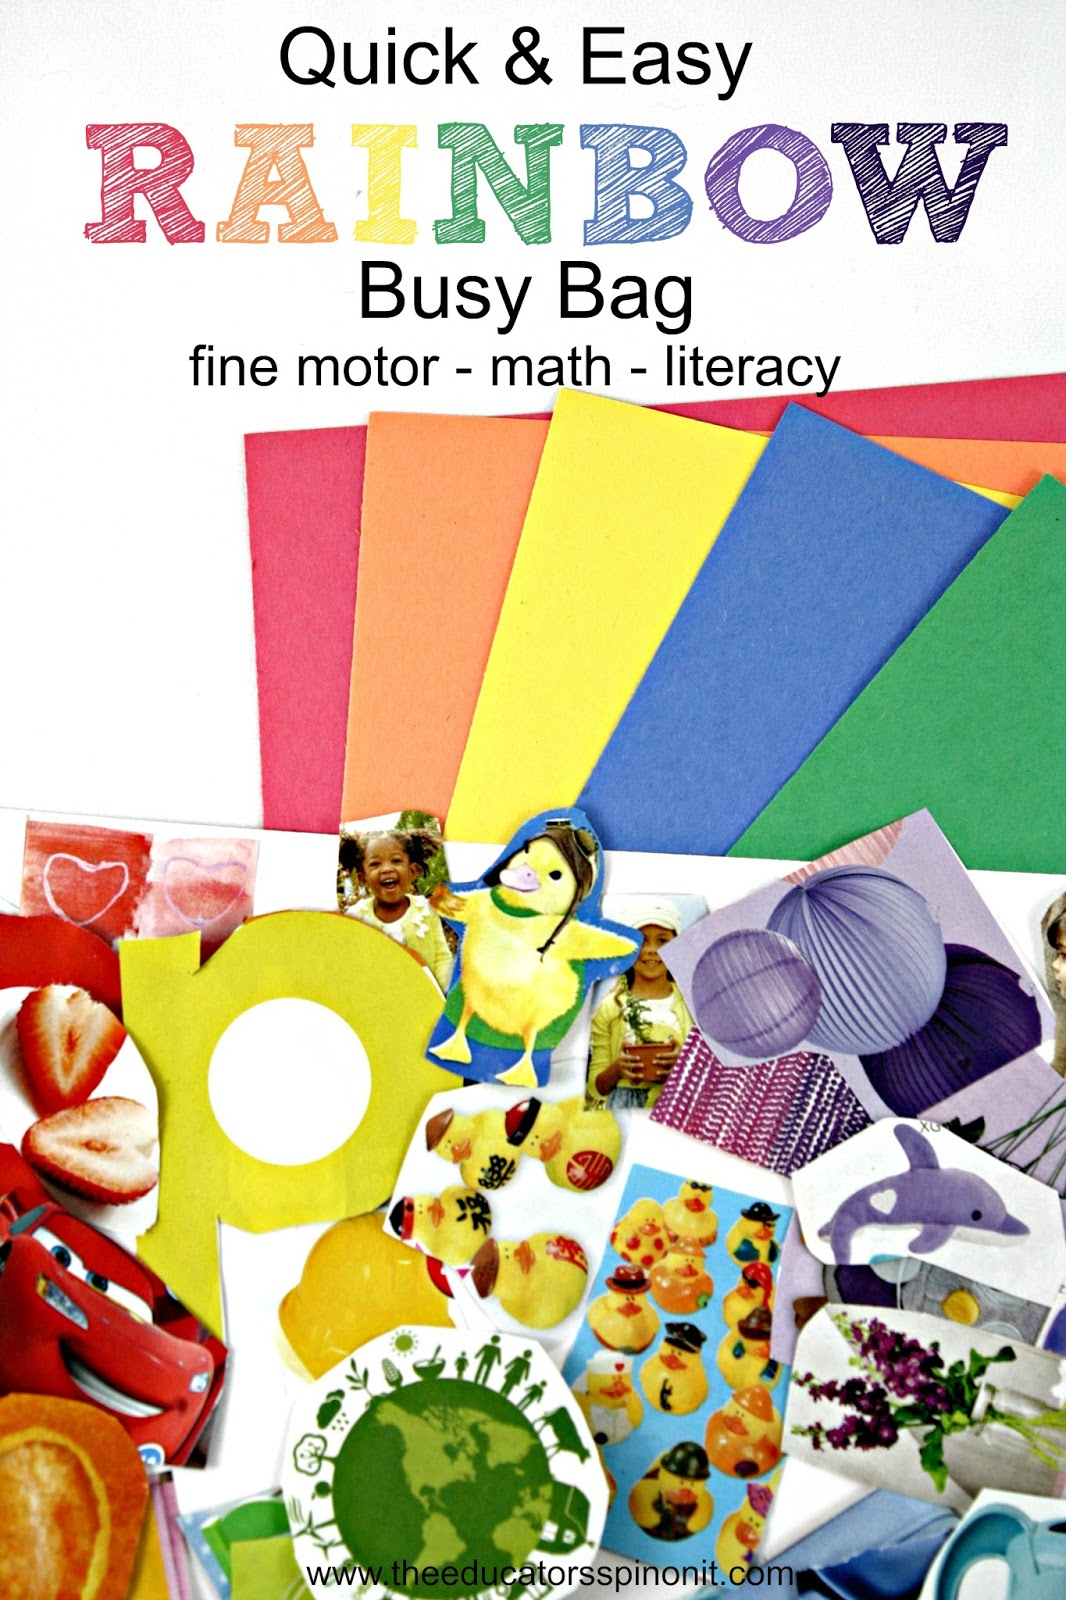 The best Rainbow Busy Bag ever, great for fine motor, math, and literacy.